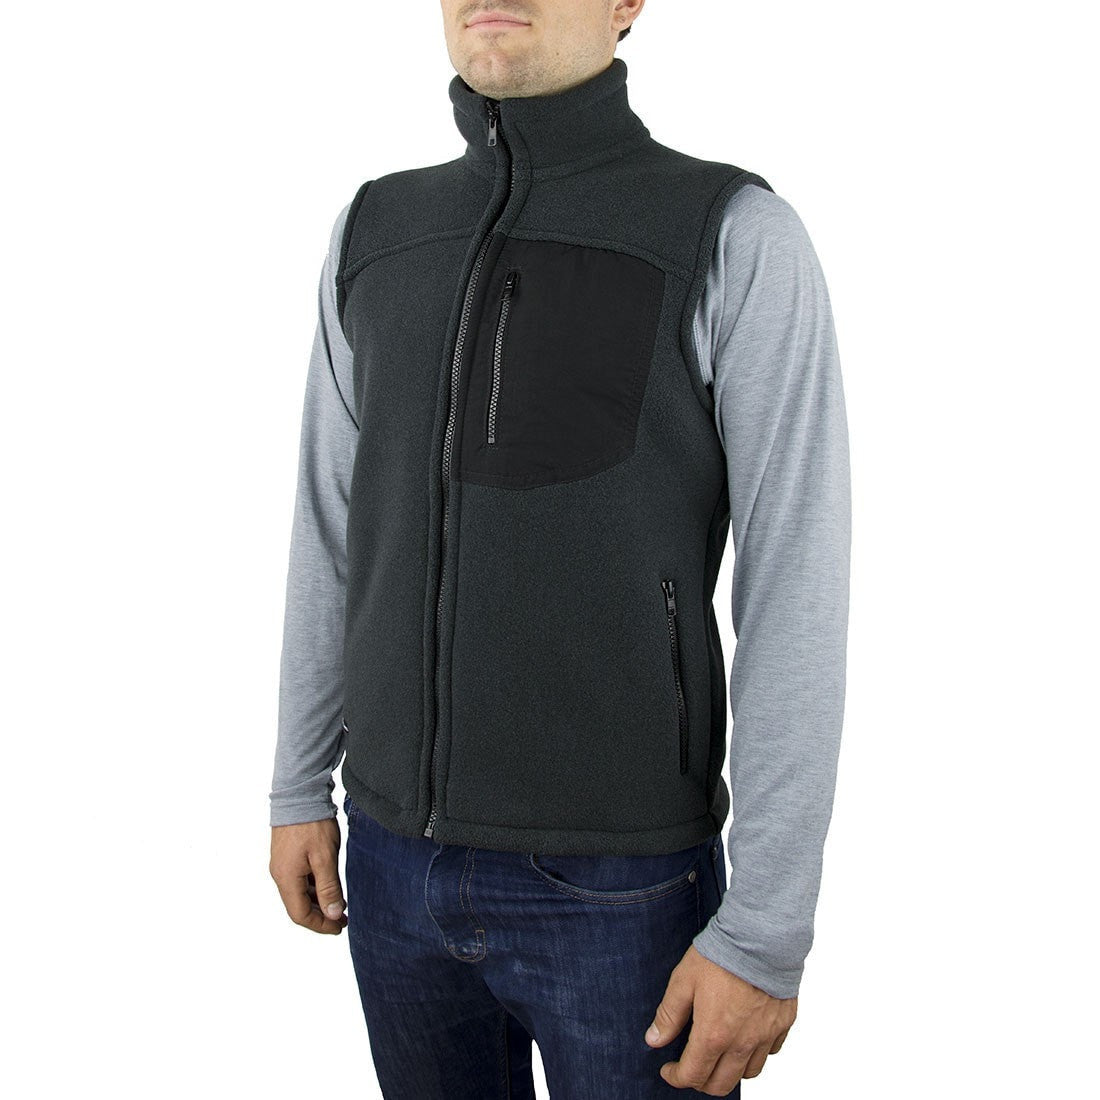 Wintergreen Northern Wear Vest Java Vest (Men's) clothing made in america minnesota made outdoor clothing ely hand made outdoor clothing Made in USA